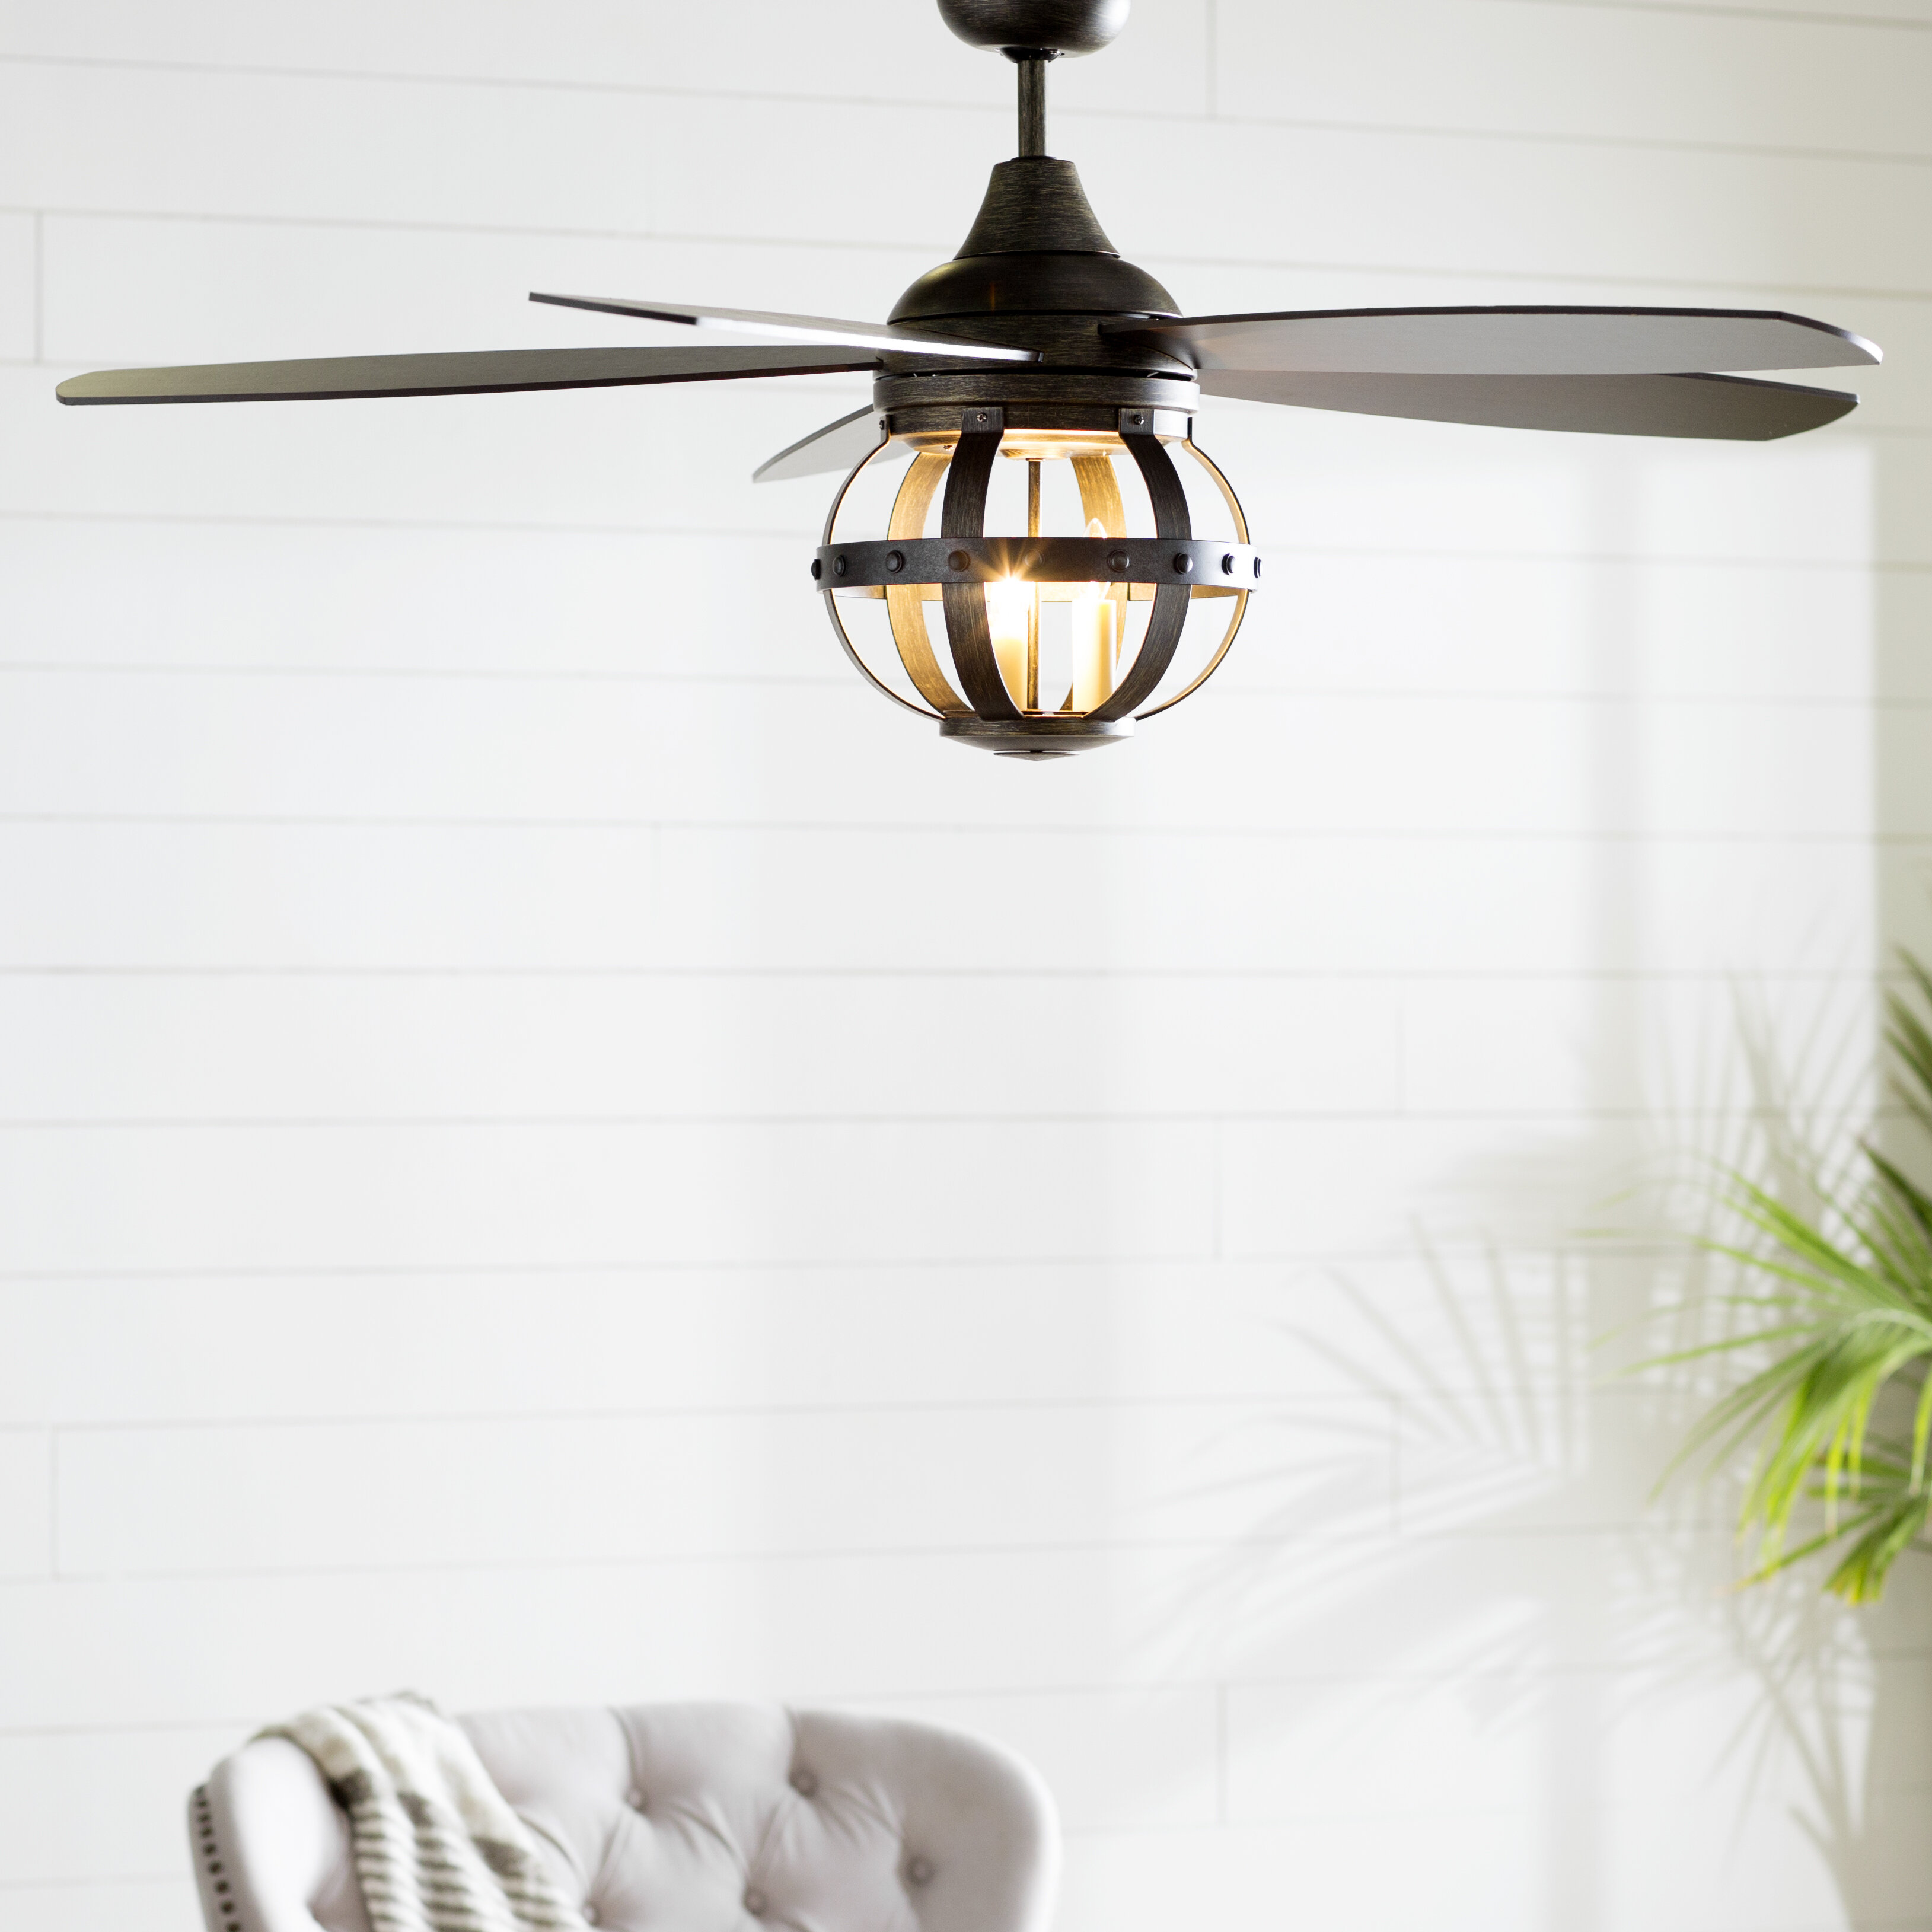 Laurel Foundry Modern Farmhouse 52 Wilburton 5 Blade Caged Ceiling Fan With Remote Control And Light Kit Included Reviews Wayfair